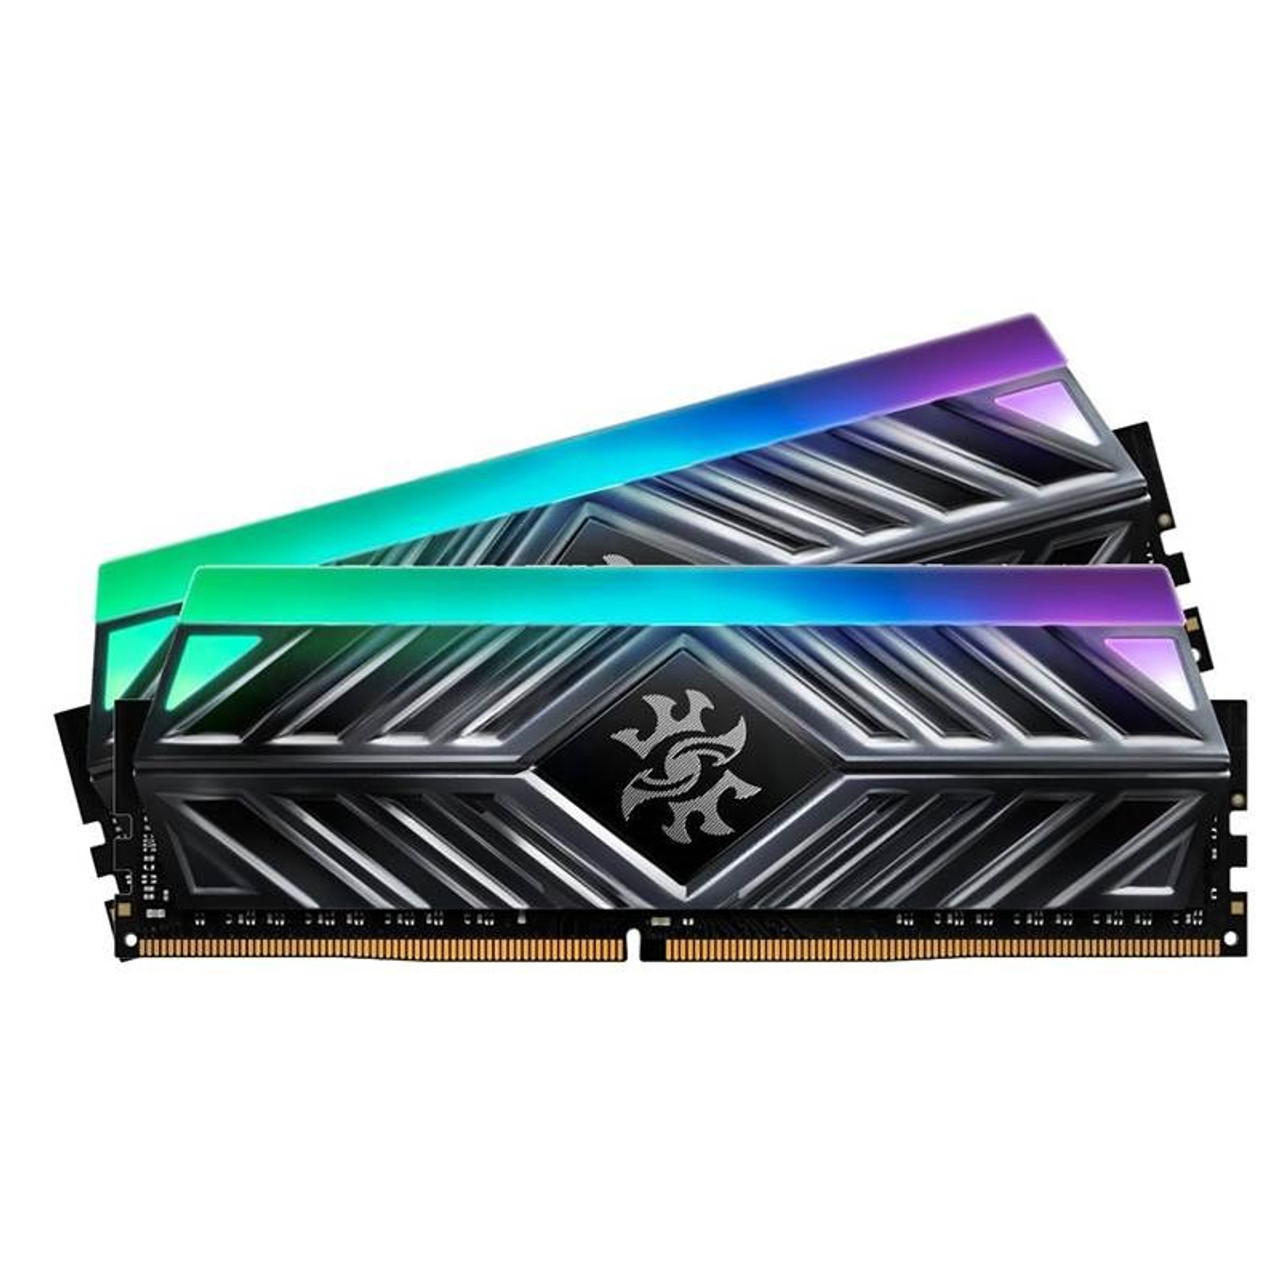 Image for Adata XPG Spectrix D41 16GB (2x 8GB) DDR4 3600MHz RGB Memory - Titanium Gray CX Computer Superstore